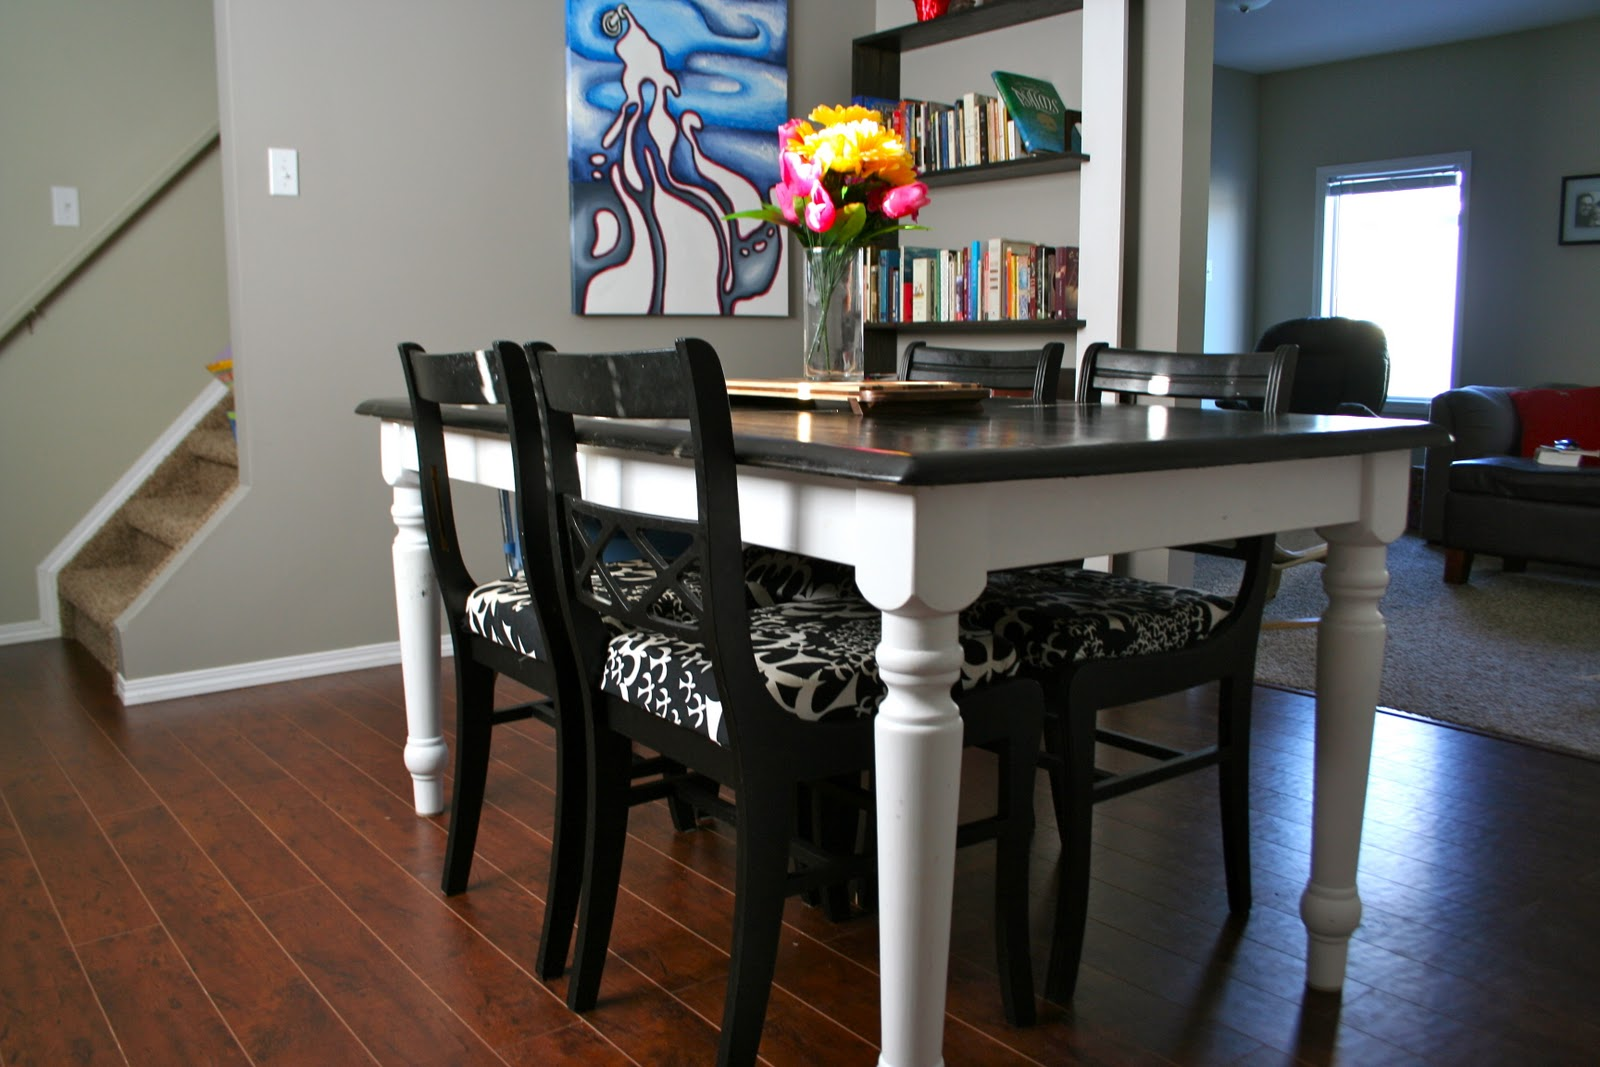 Dining room table Archives Page 3 of 32 Design your home : refinish dining room table 1 from homeemoney.com size 1600 x 1067 jpeg 194kB